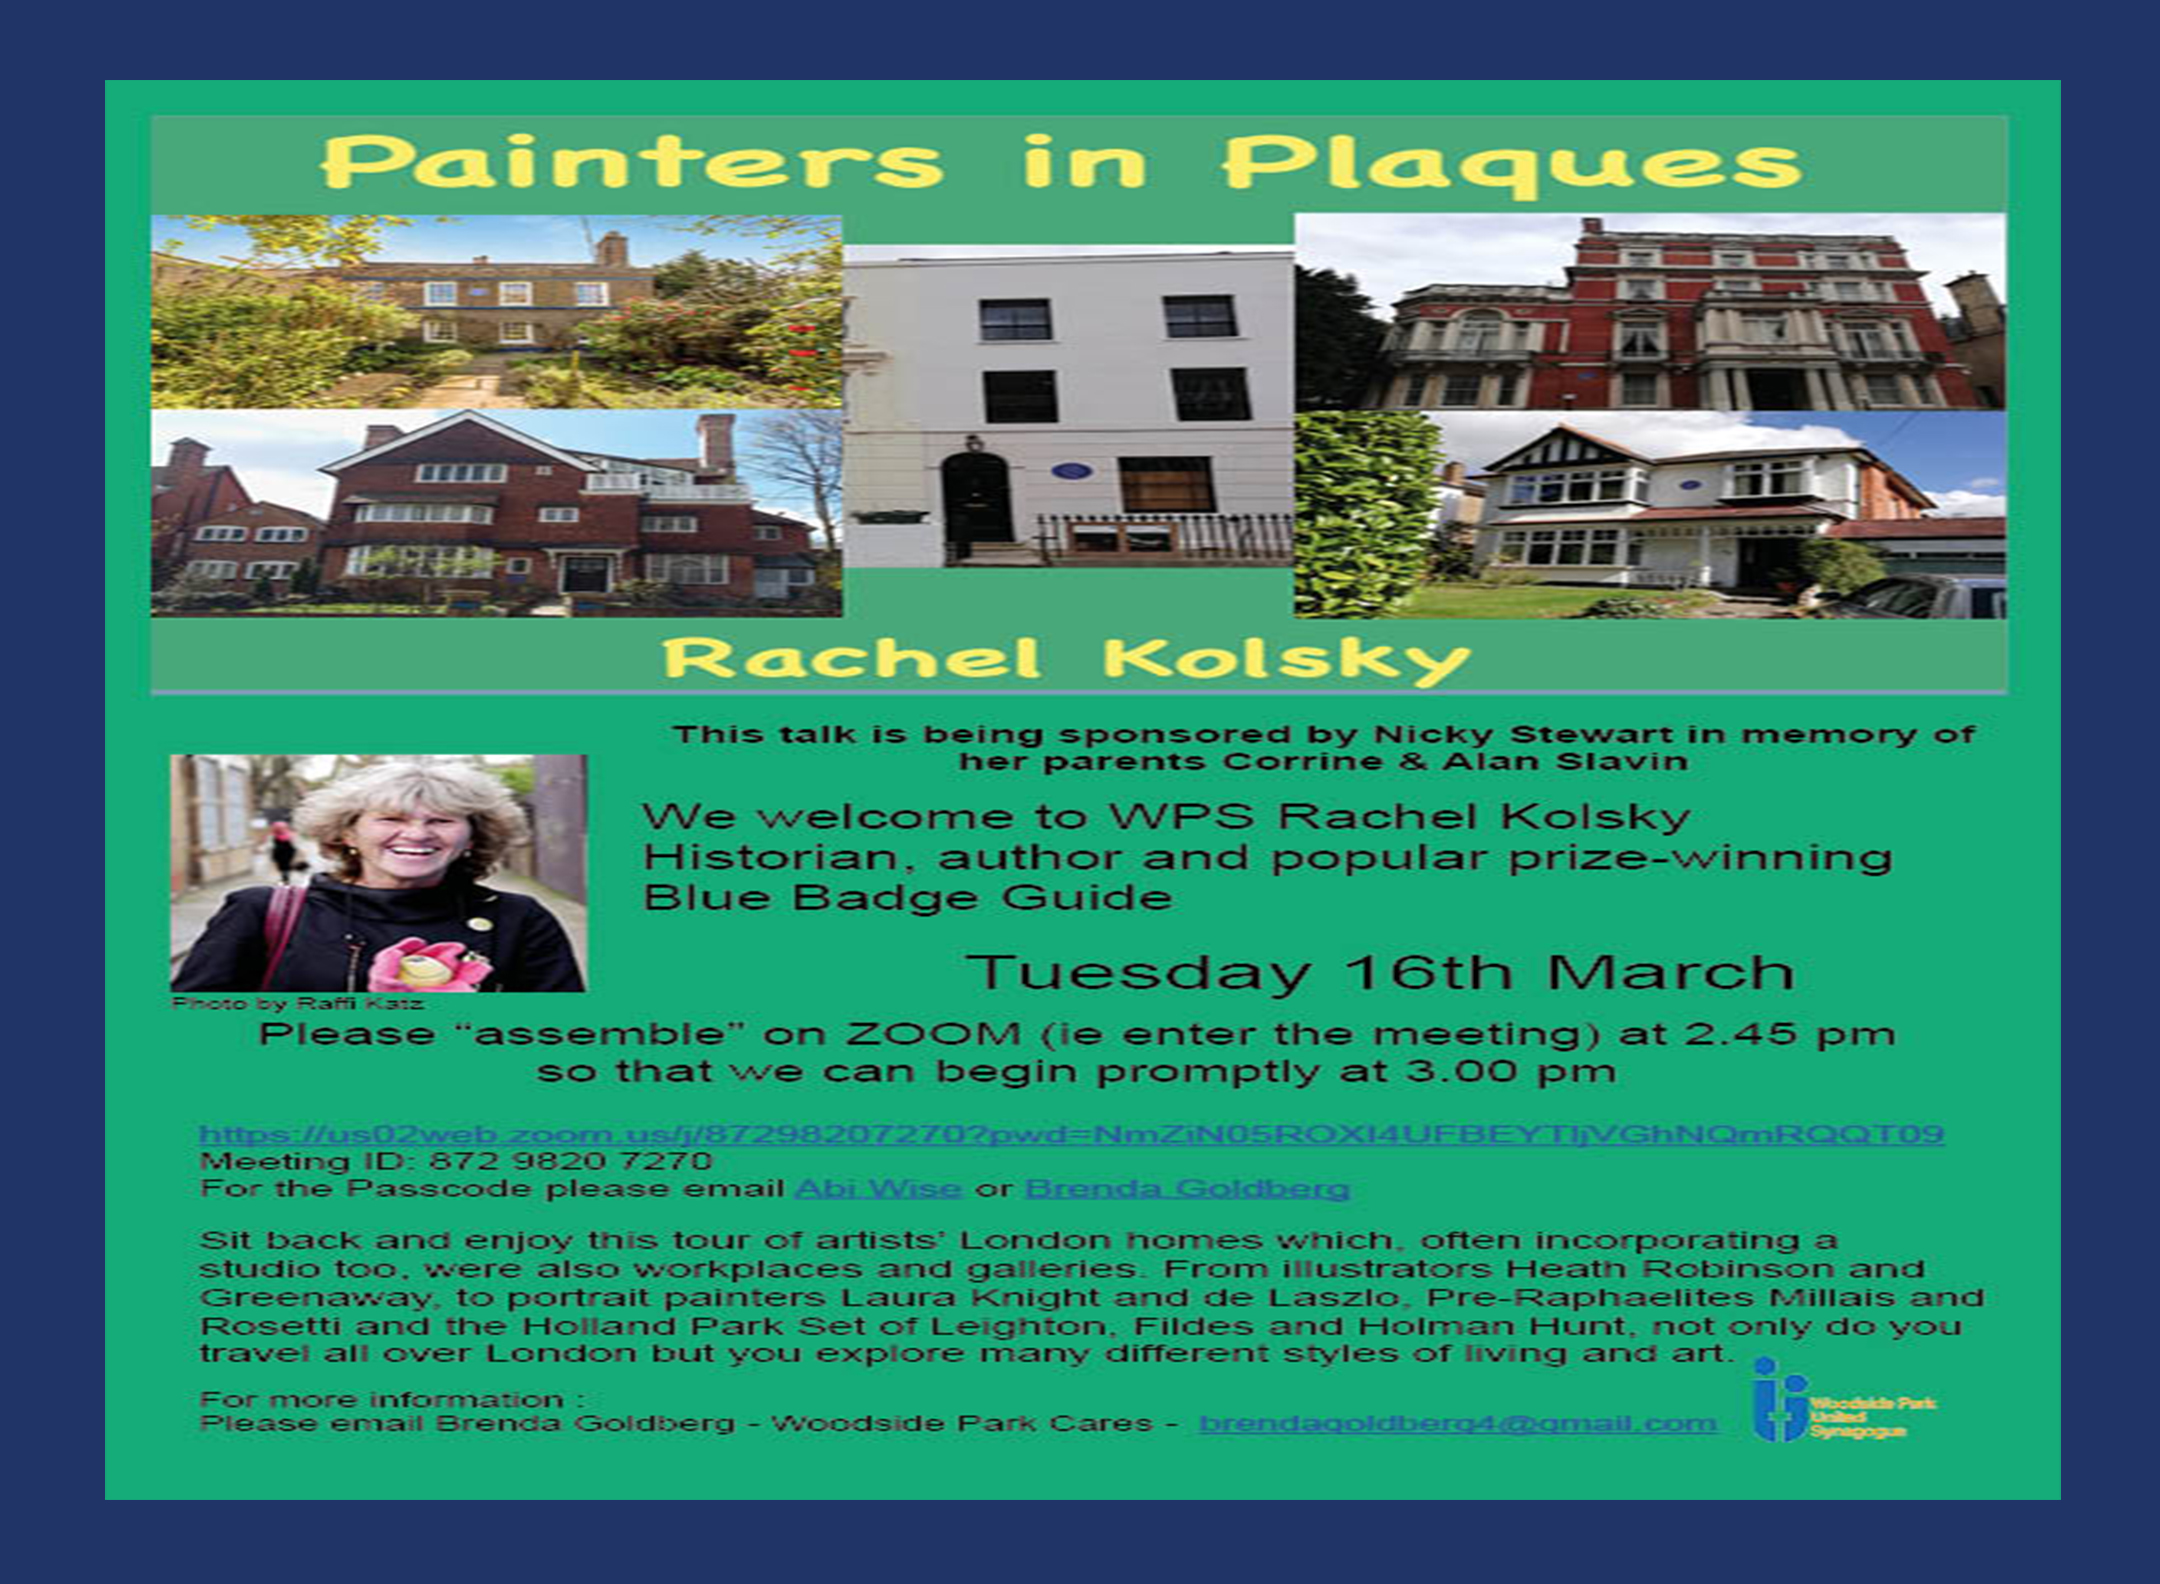 02 painters and plaques